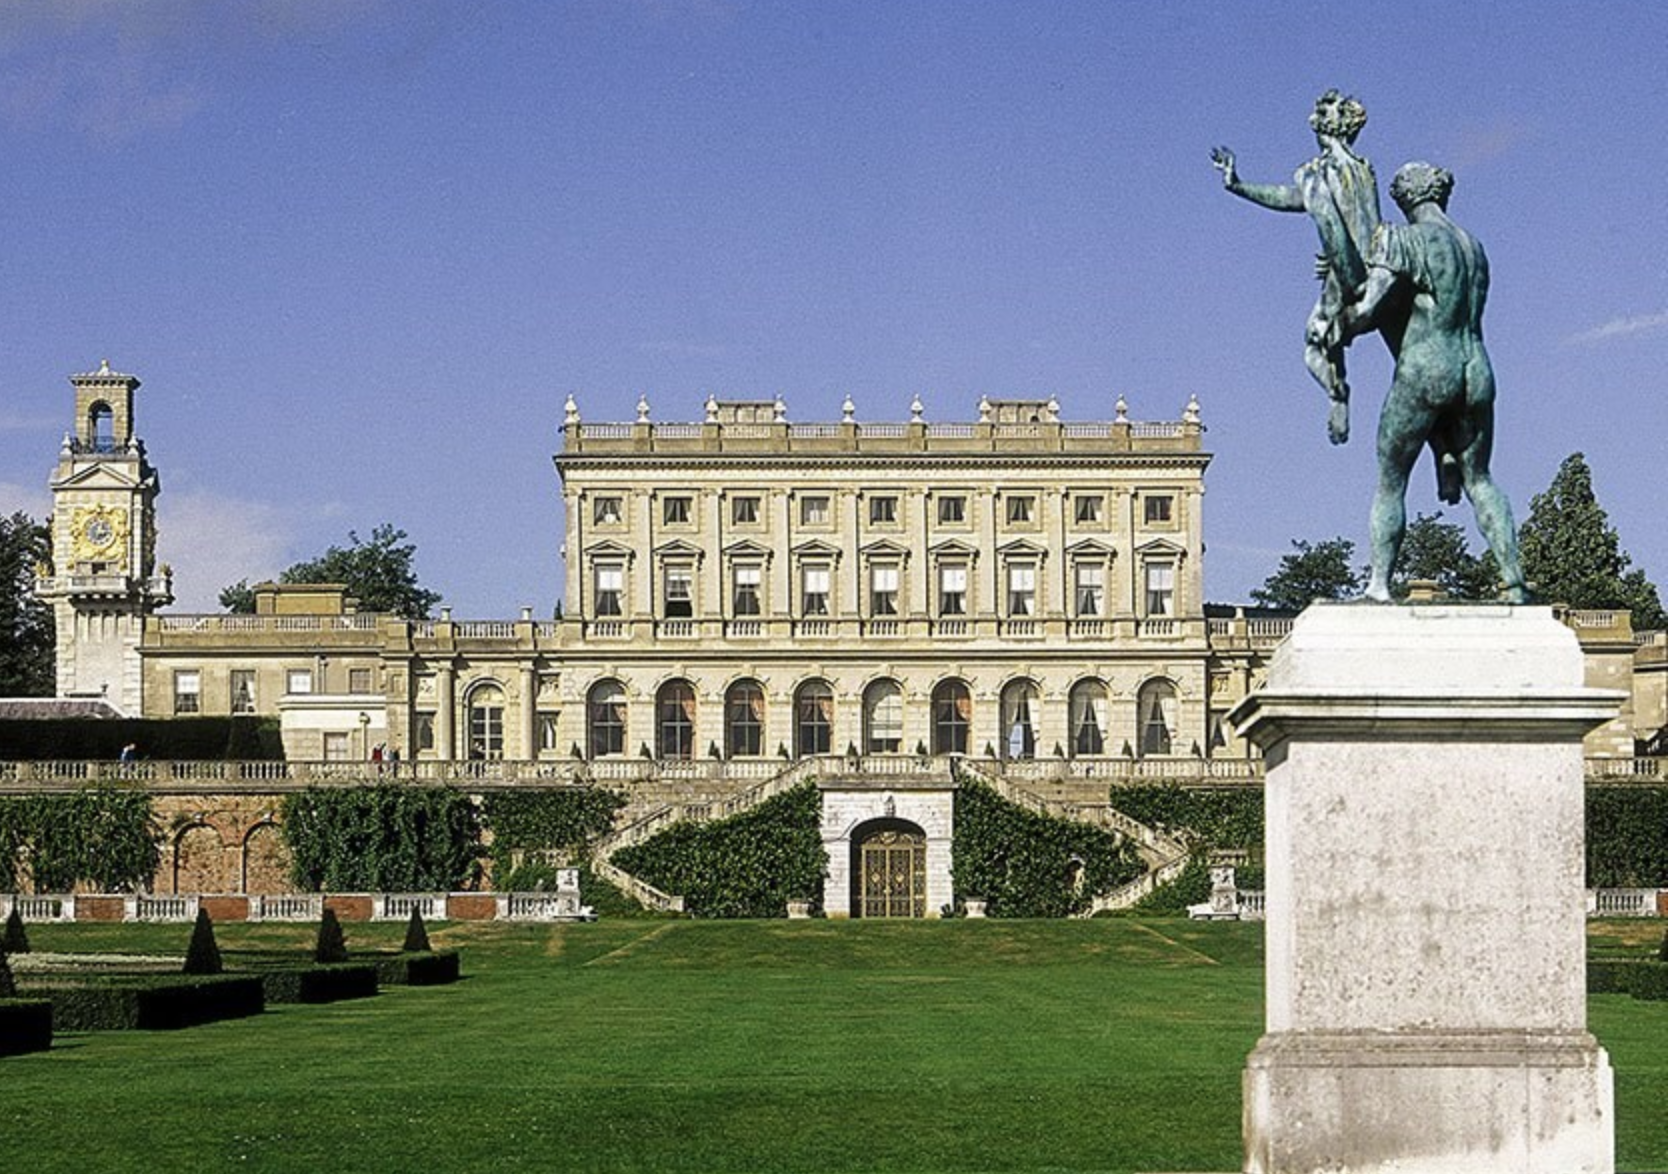 Cliveden House was built in 1666 by the 2nd Duke of Buckingham, as a gift to his mistress, Cliveden House has remained a pinnacle of intrigue and glamour for the elite, according to the hotel's website. (Credit: Cliveden House)